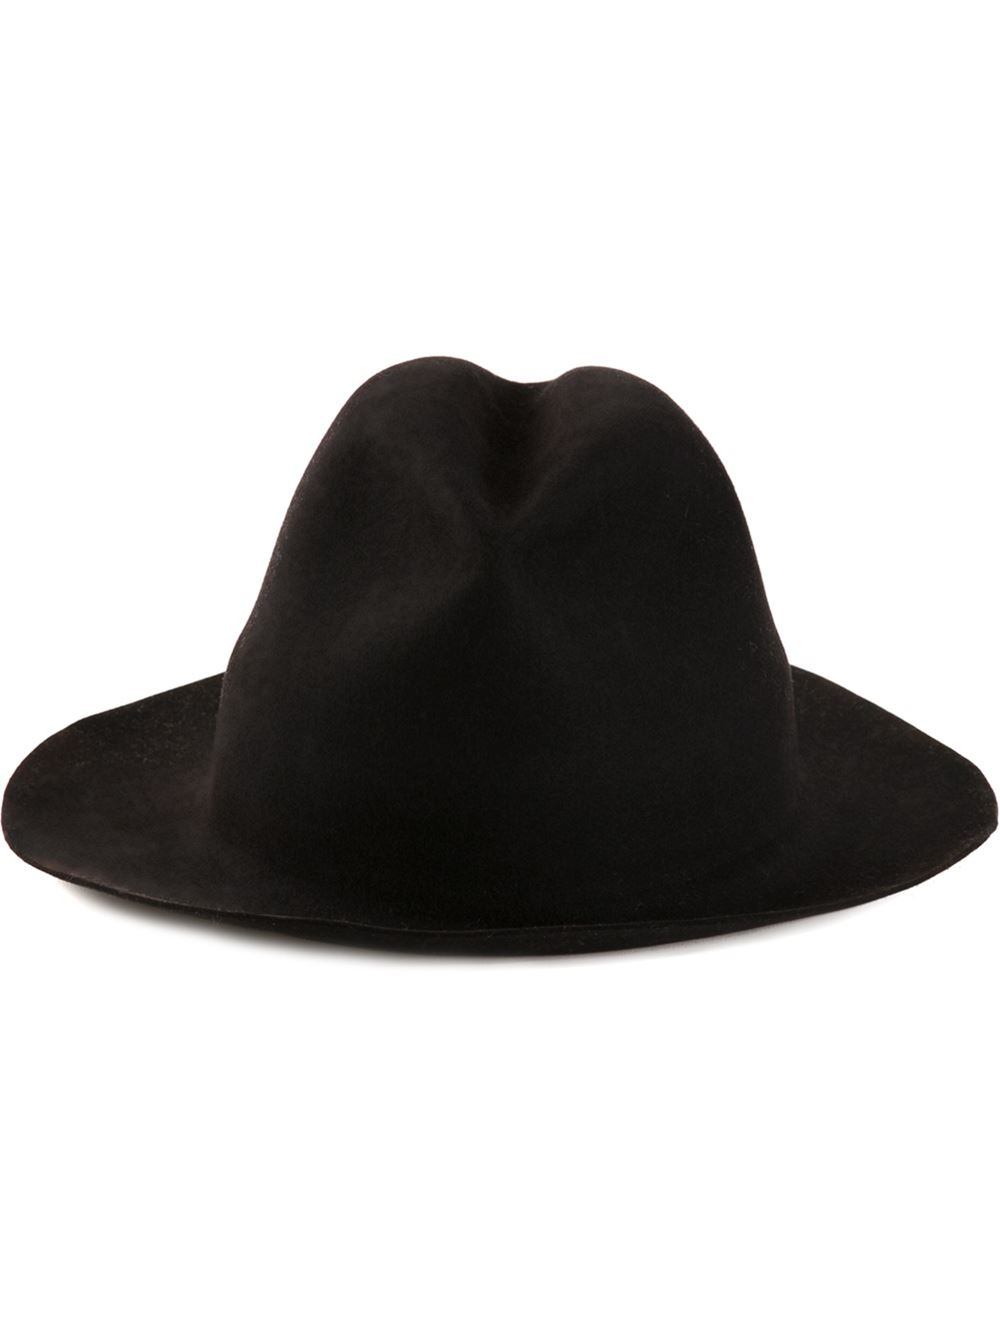 down brim, the Jillian Wool Felt Down Brim Fedora Hat is a gorgeous new offering from Brooklyn Hat Co. Featuring a black and white wide grosgrain ribbon hat band tied at the side, the Jillian shines in a rich burgundy hue.